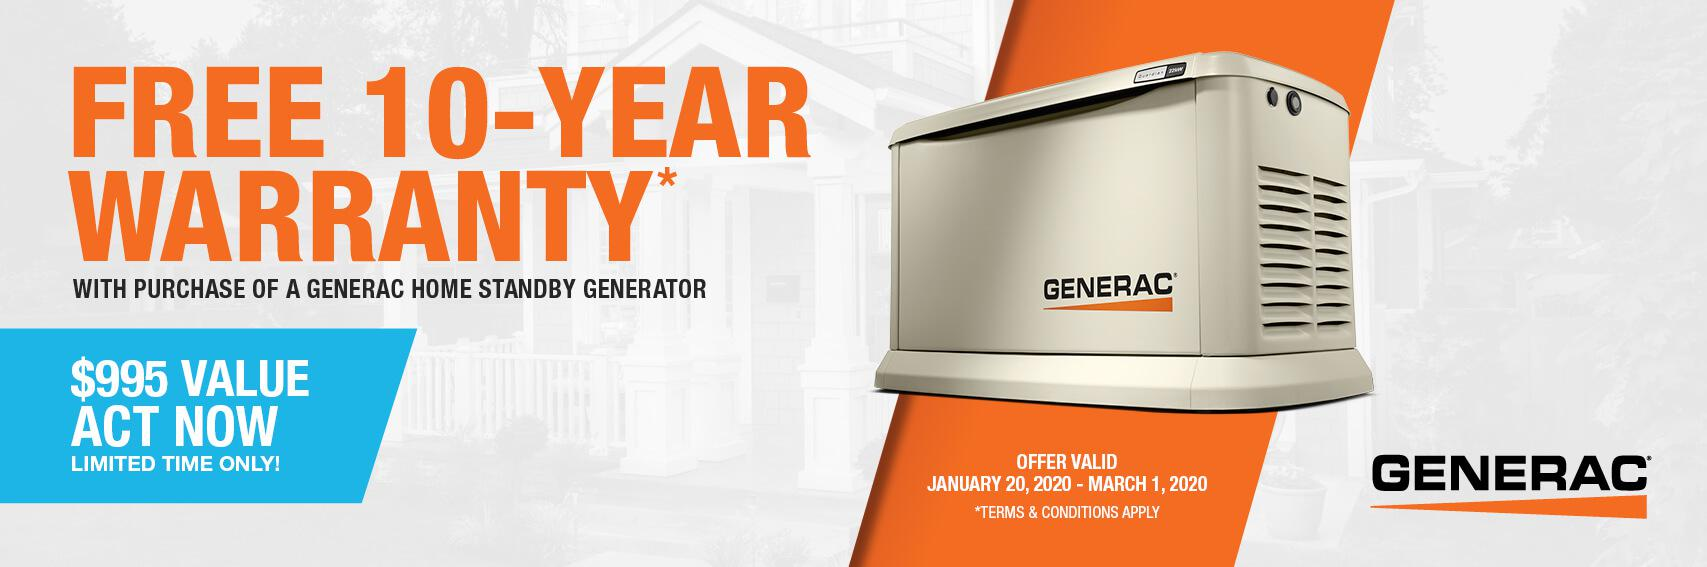 Homestandby Generator Deal | Warranty Offer | Generac Dealer | Rockaway, NJ